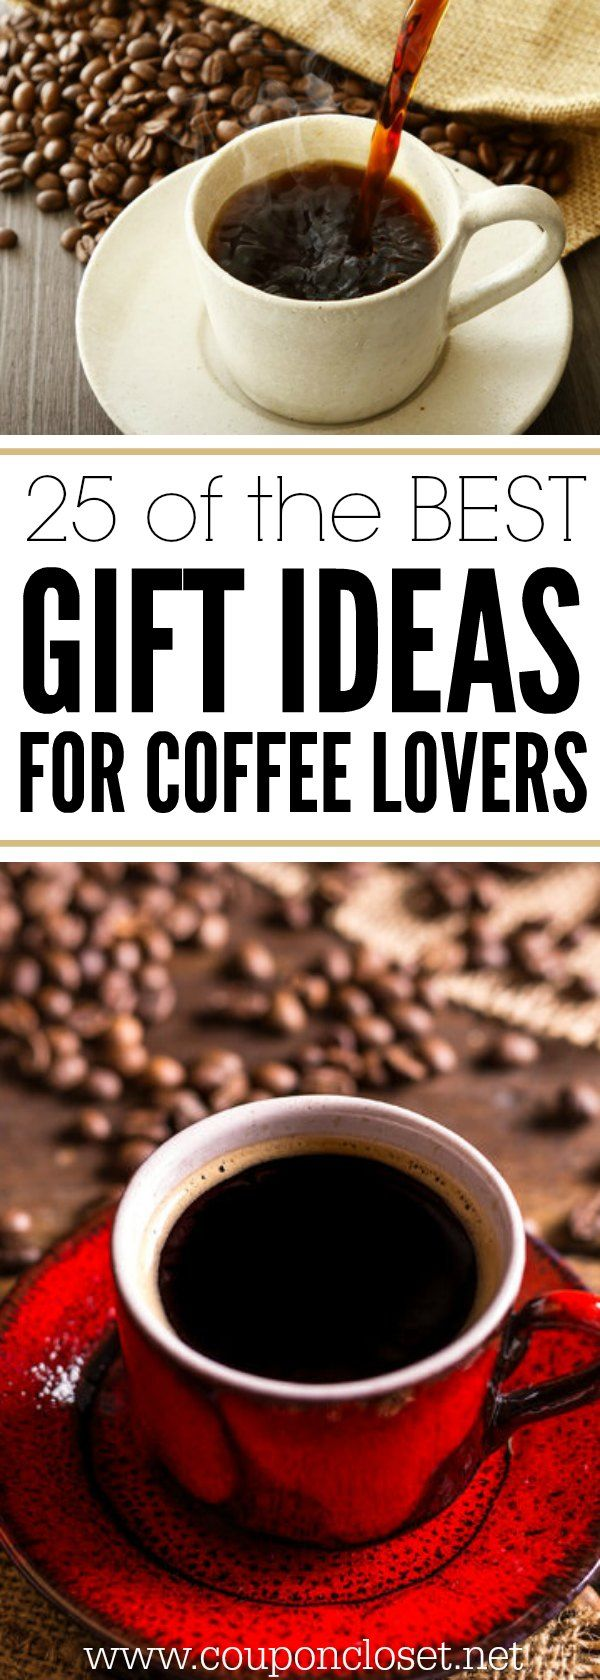 Best gifts for coffee lovers 25 gift ideas for coffee